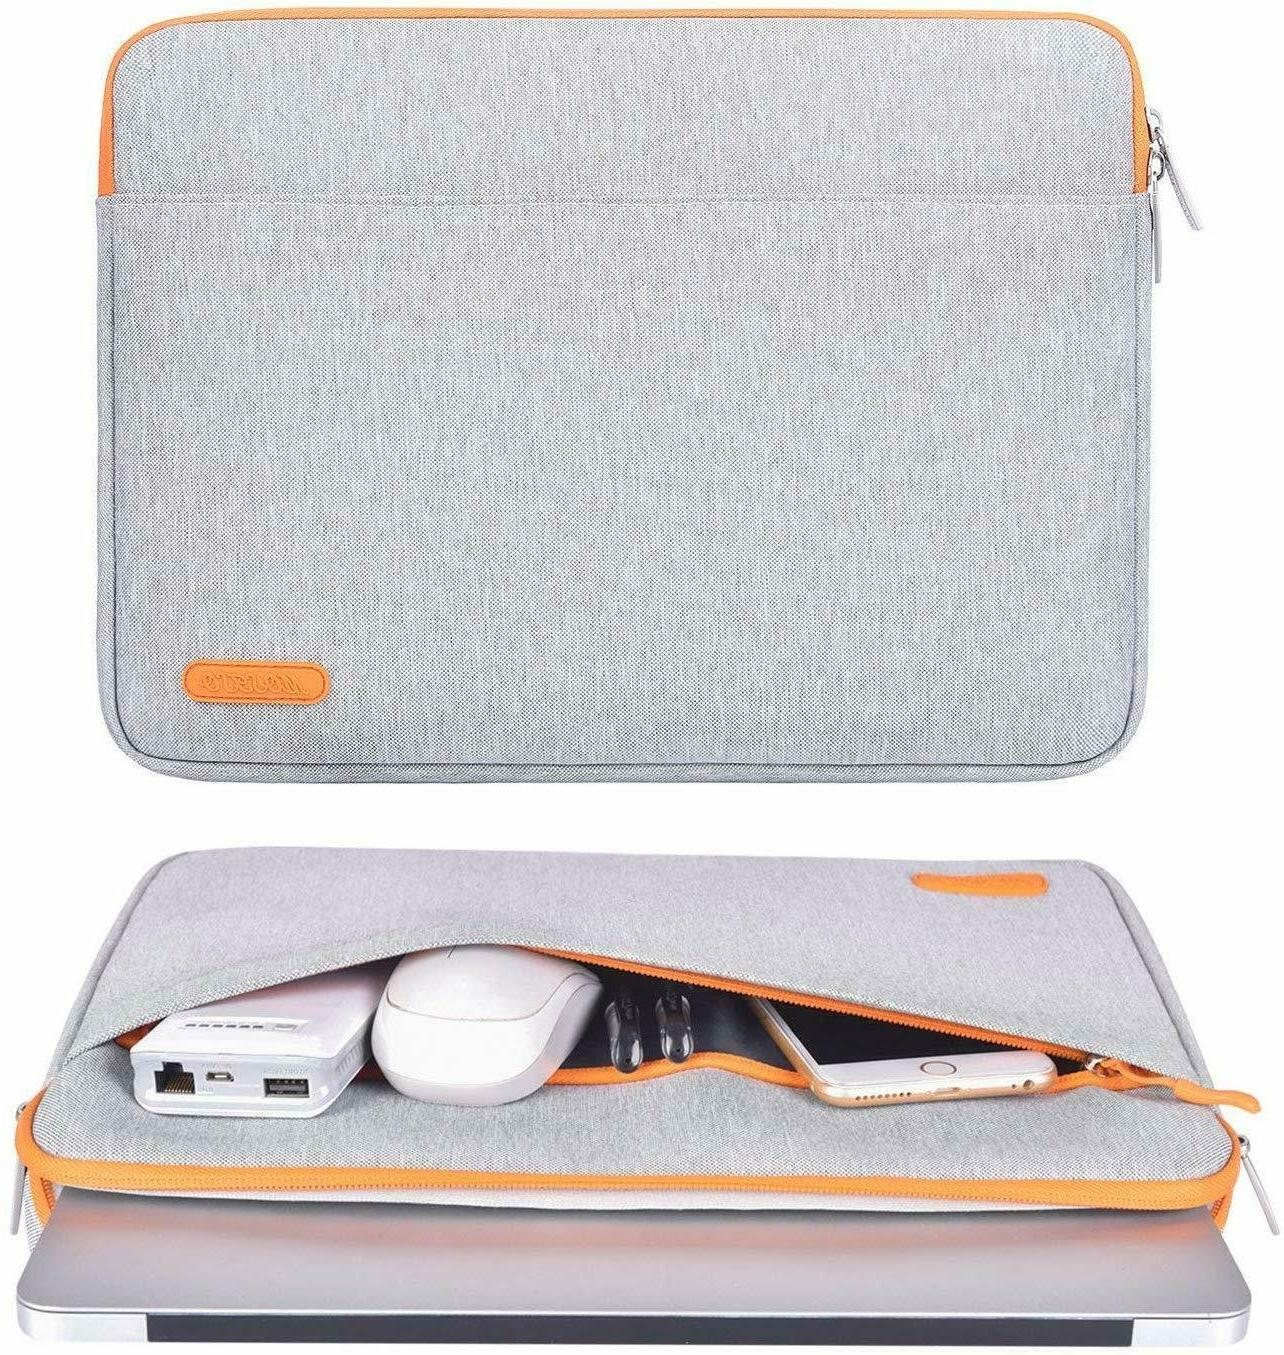 Mosiso Macbook Air 13 Laptop Bag Case Dell